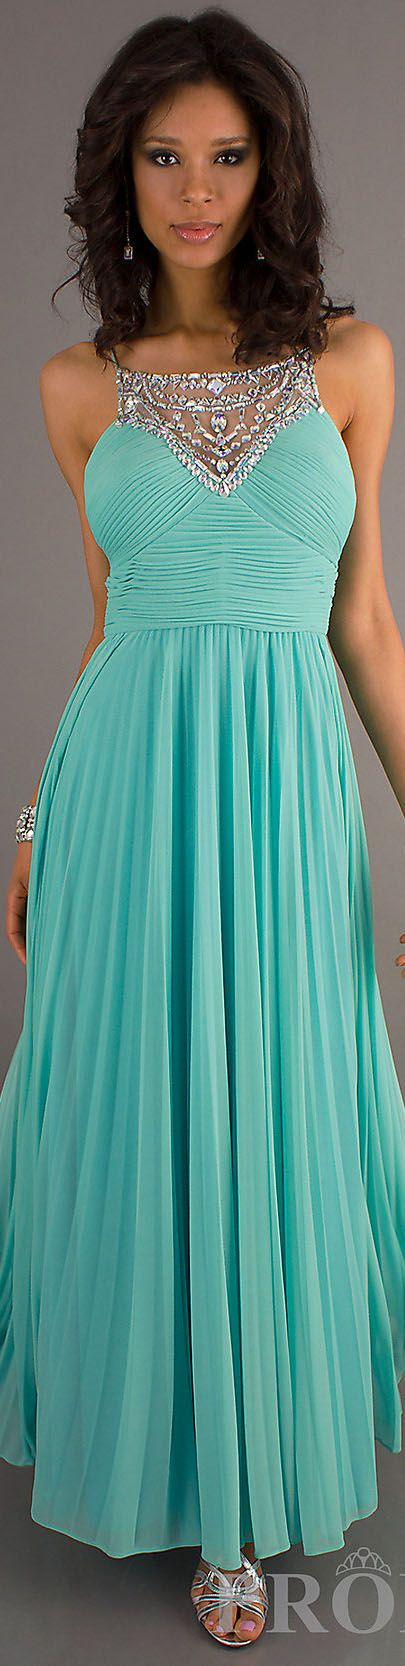 Yes. Mint prom dress with beaded/sequin chest piece.